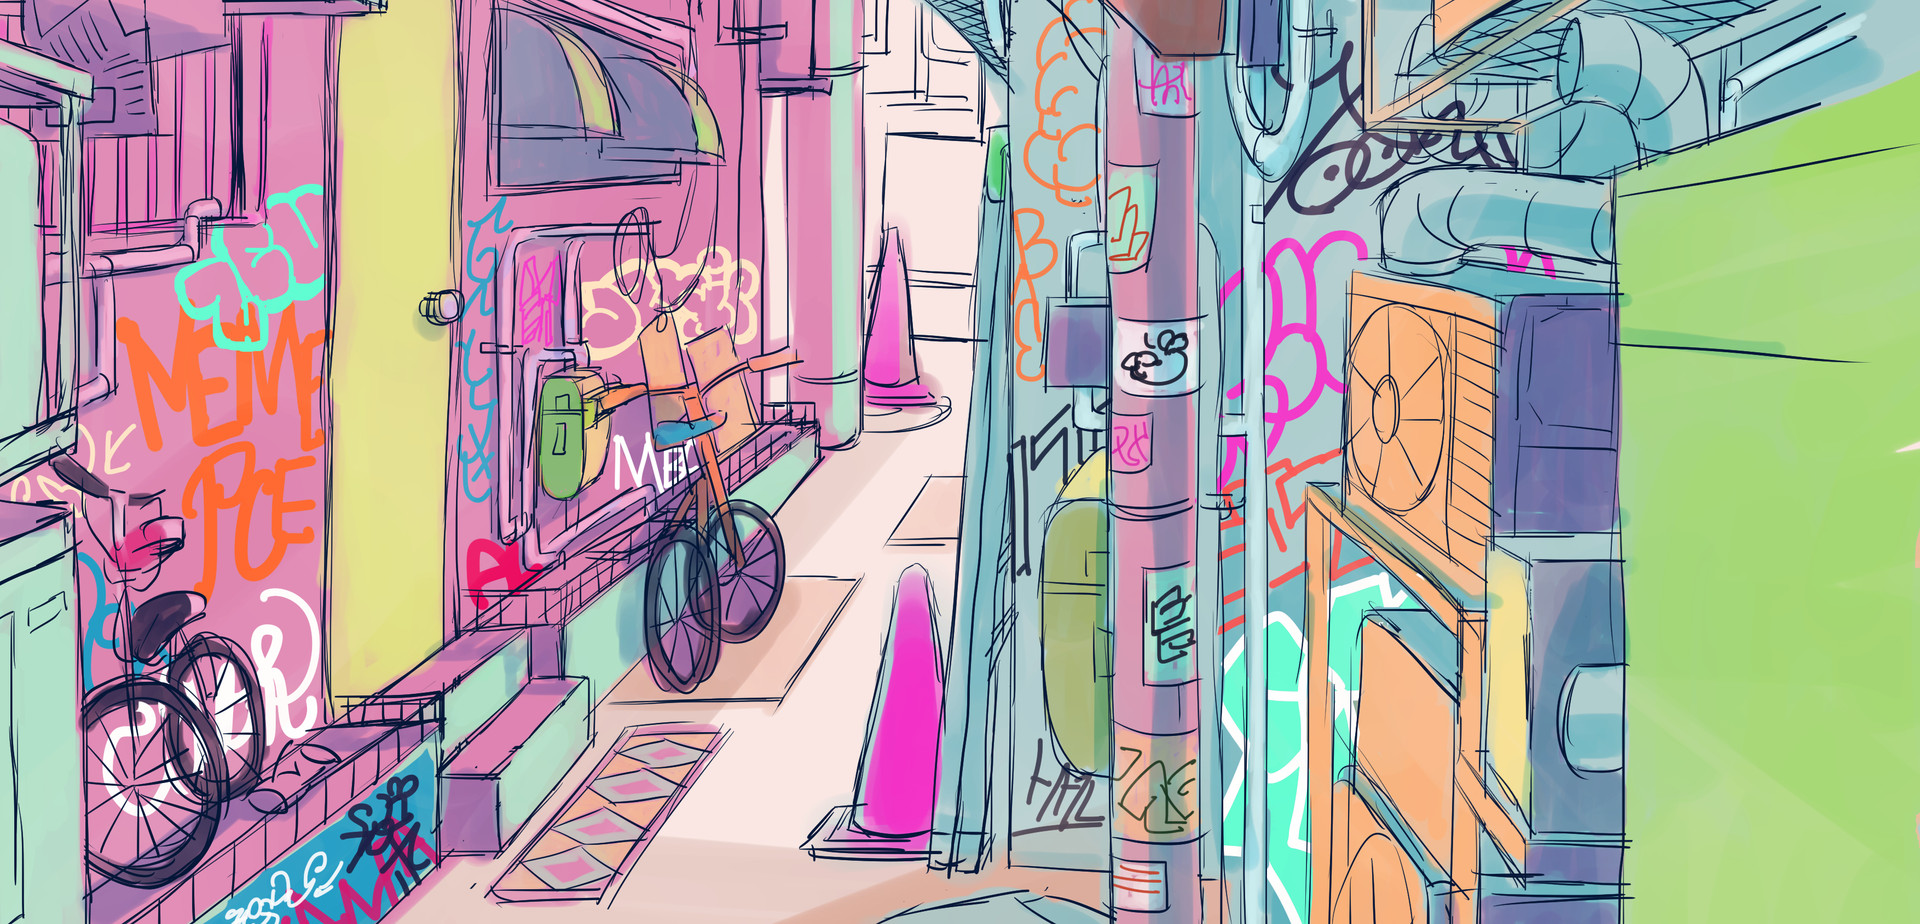 A_project_BG_idea_05.jpg